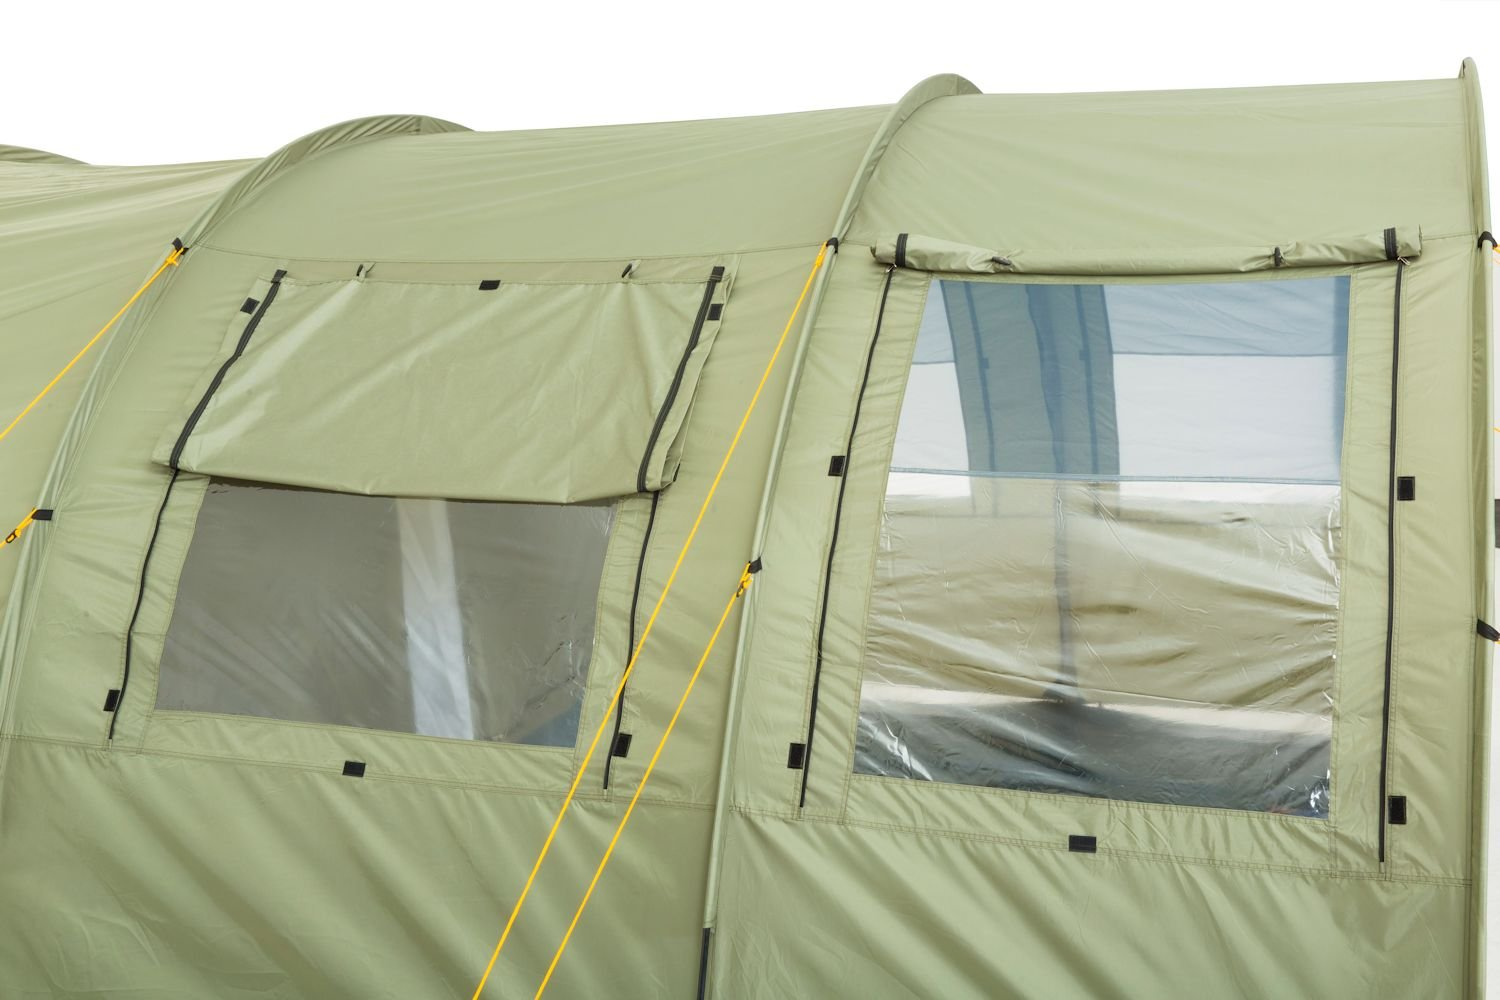 CampFeuer - Tunnel Tent with 2 Sleeping Compartments, Olive-Green, with Groundsheet and Movable Front Wall 6